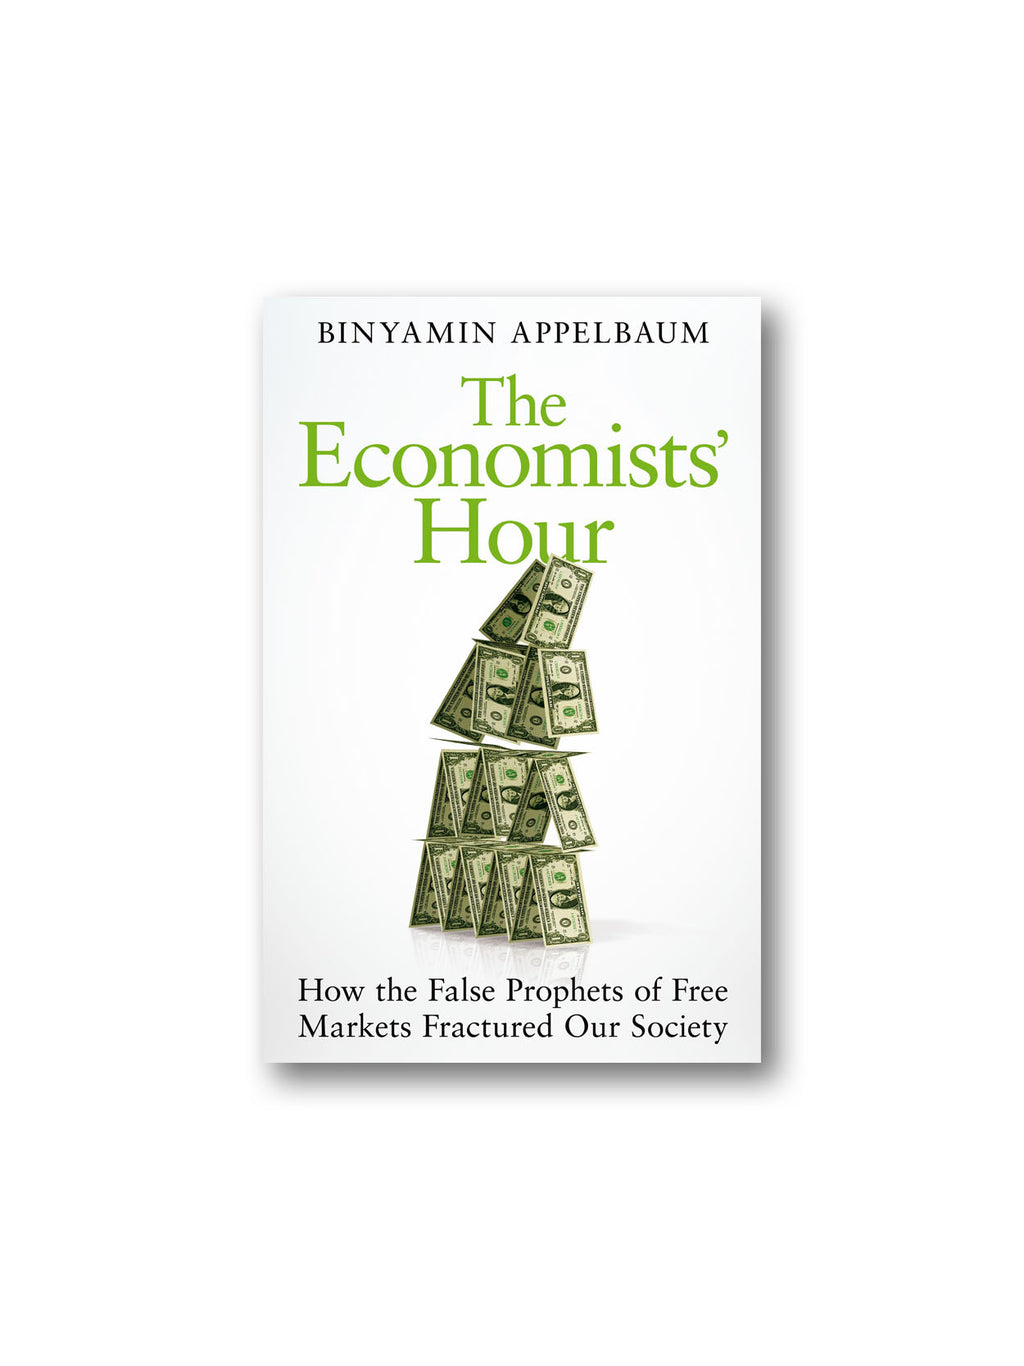 The Economists' Hour : How the False Prophets of Free Markets Fractured Our Society